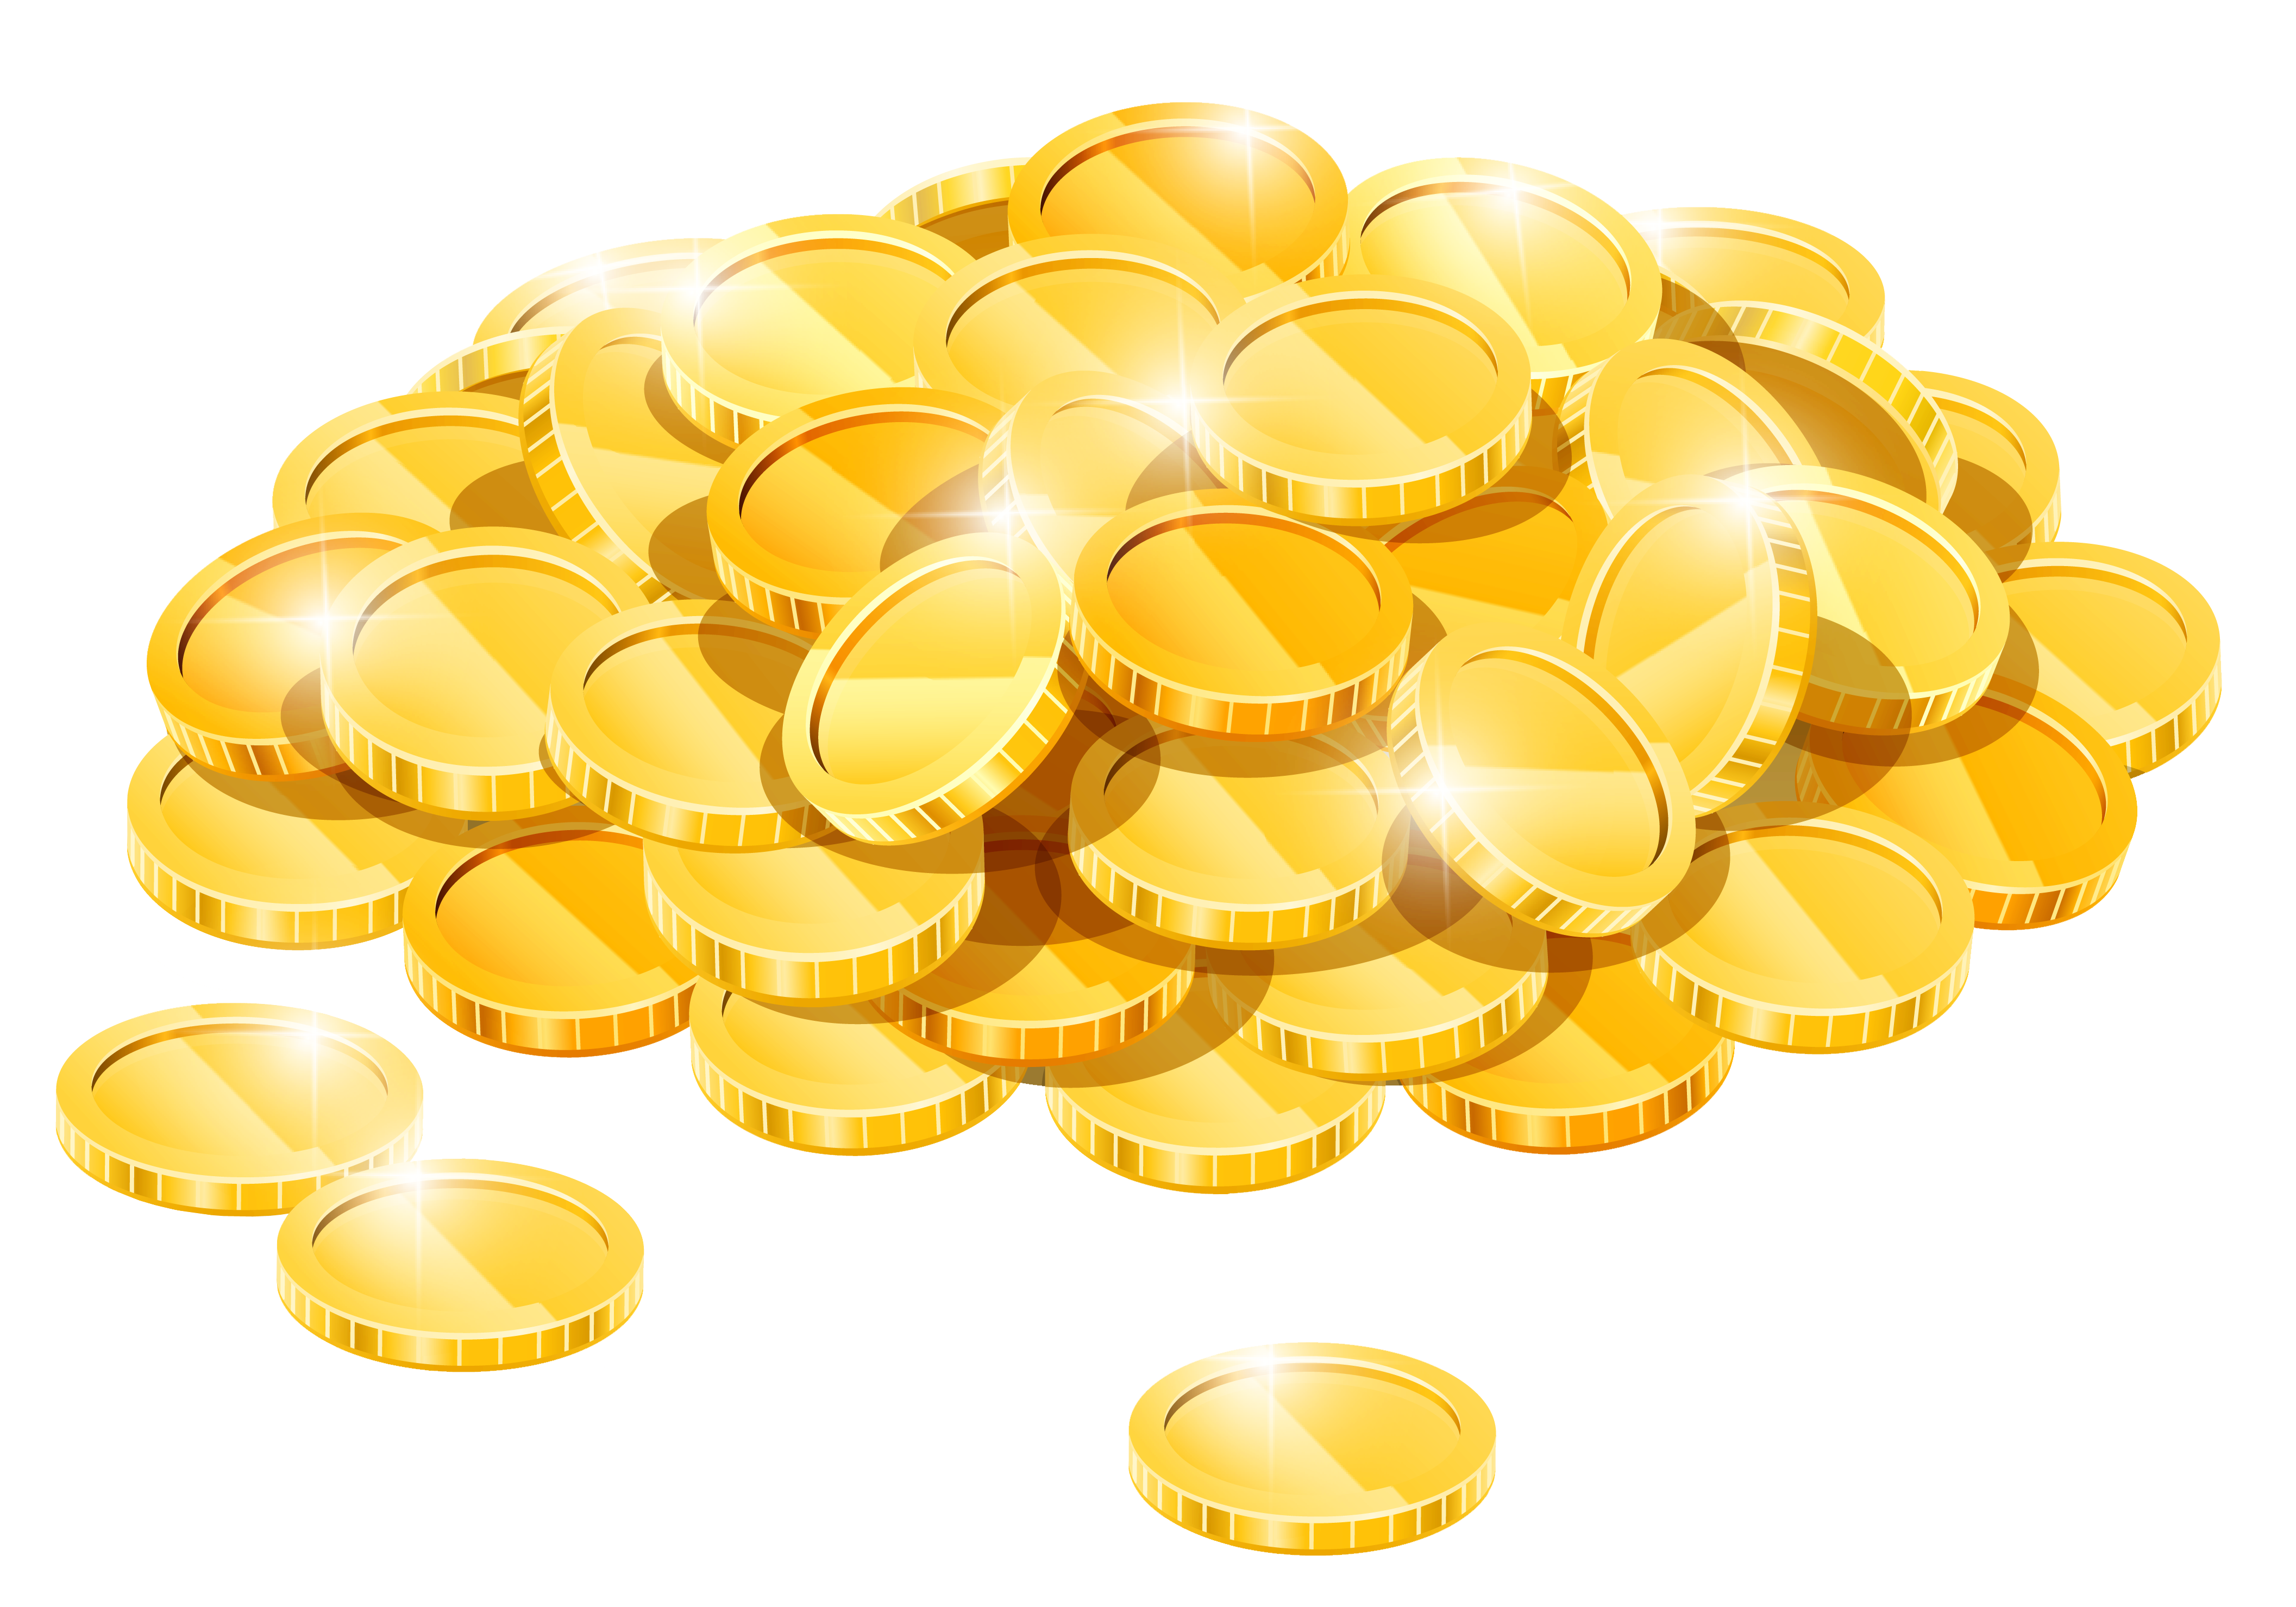 Gold Coins Pile PNG Clipart.